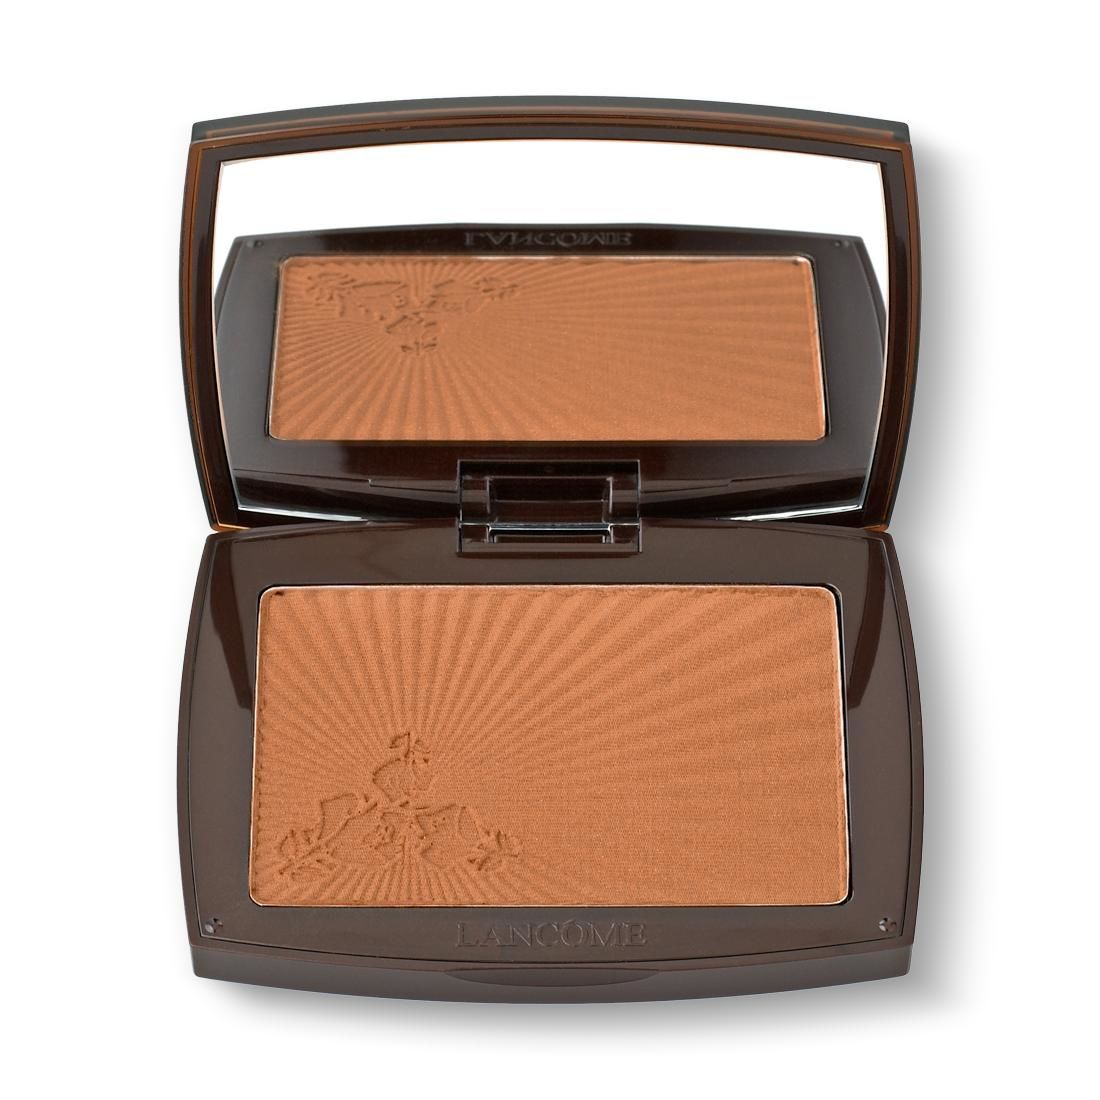 Lancôme STAR BRONZER NATURAL GLOW Long Lasting Bronzing Powder